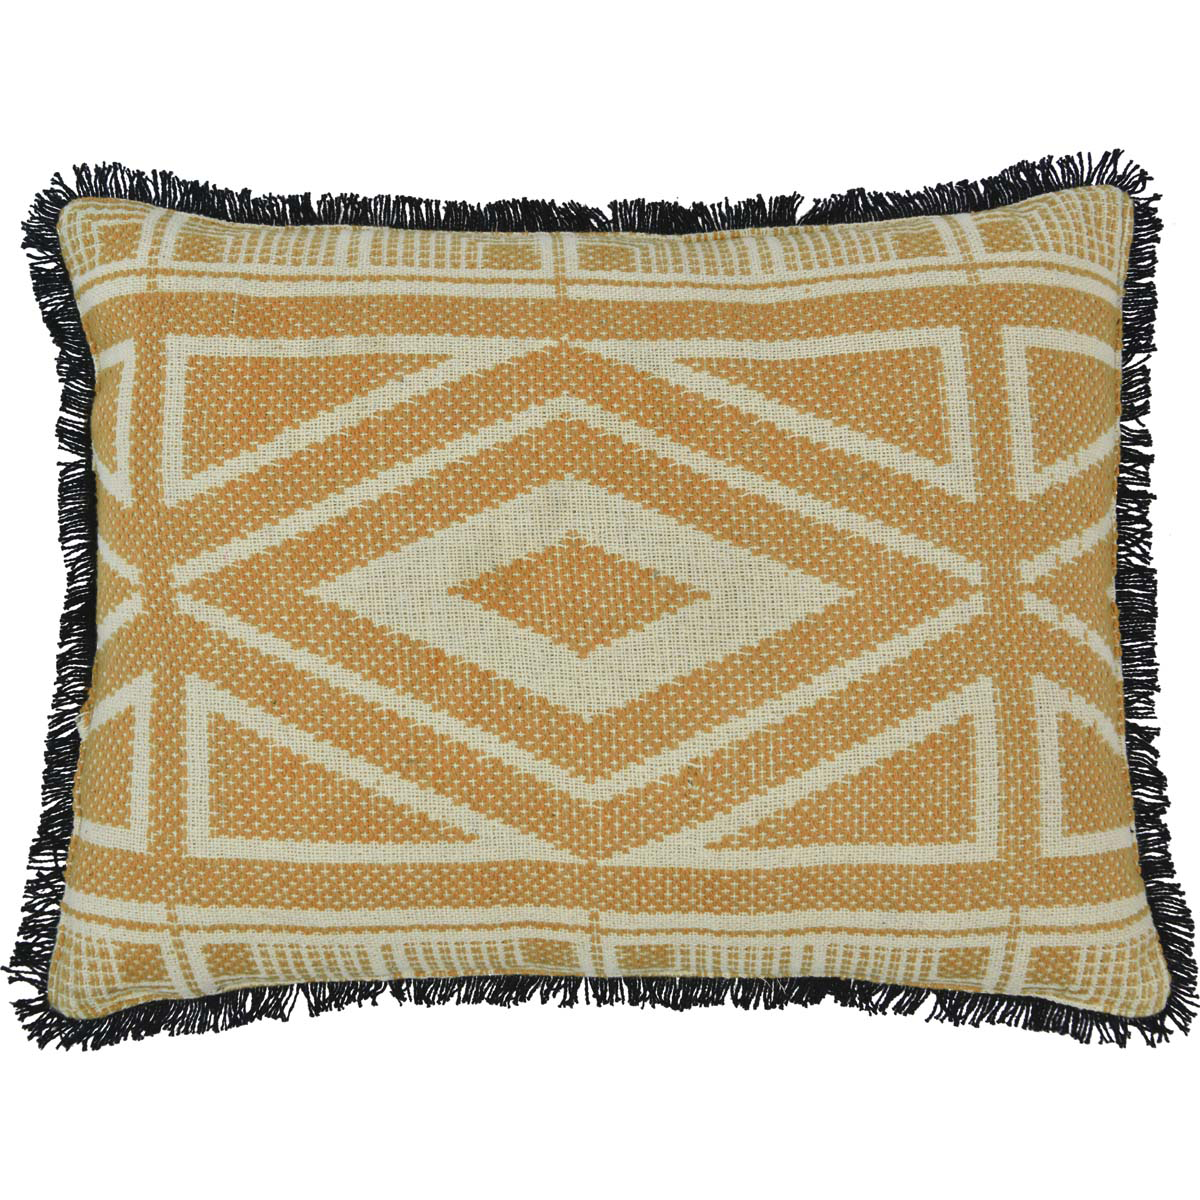 "Dakota Jacquard Pillow - 14""x18"" - VHC Brands - Boho and Eclectic Style"